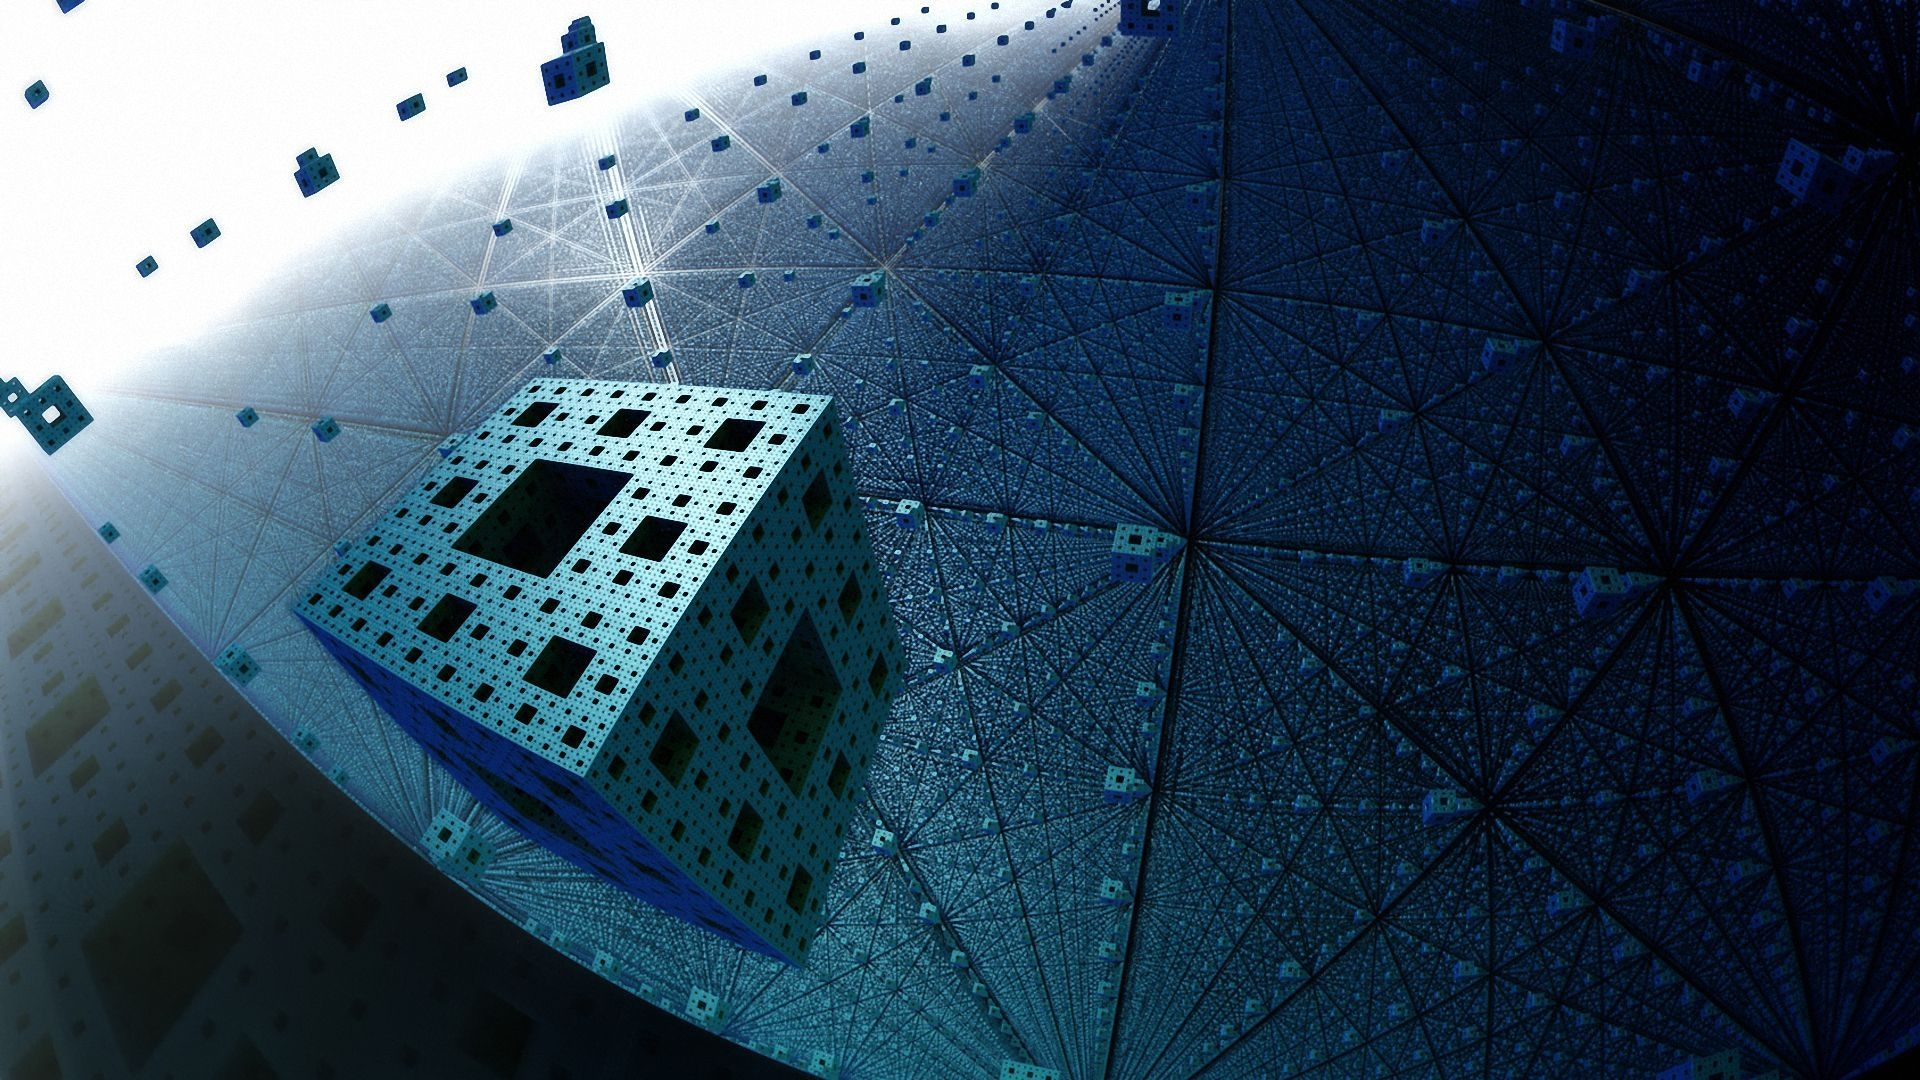 Download Wallpaper 1920x1080 Fractal Menger Sponge Flight Full Hd 1080p Hd Background Hd Wallpaper Fractals 3d Wallpaper